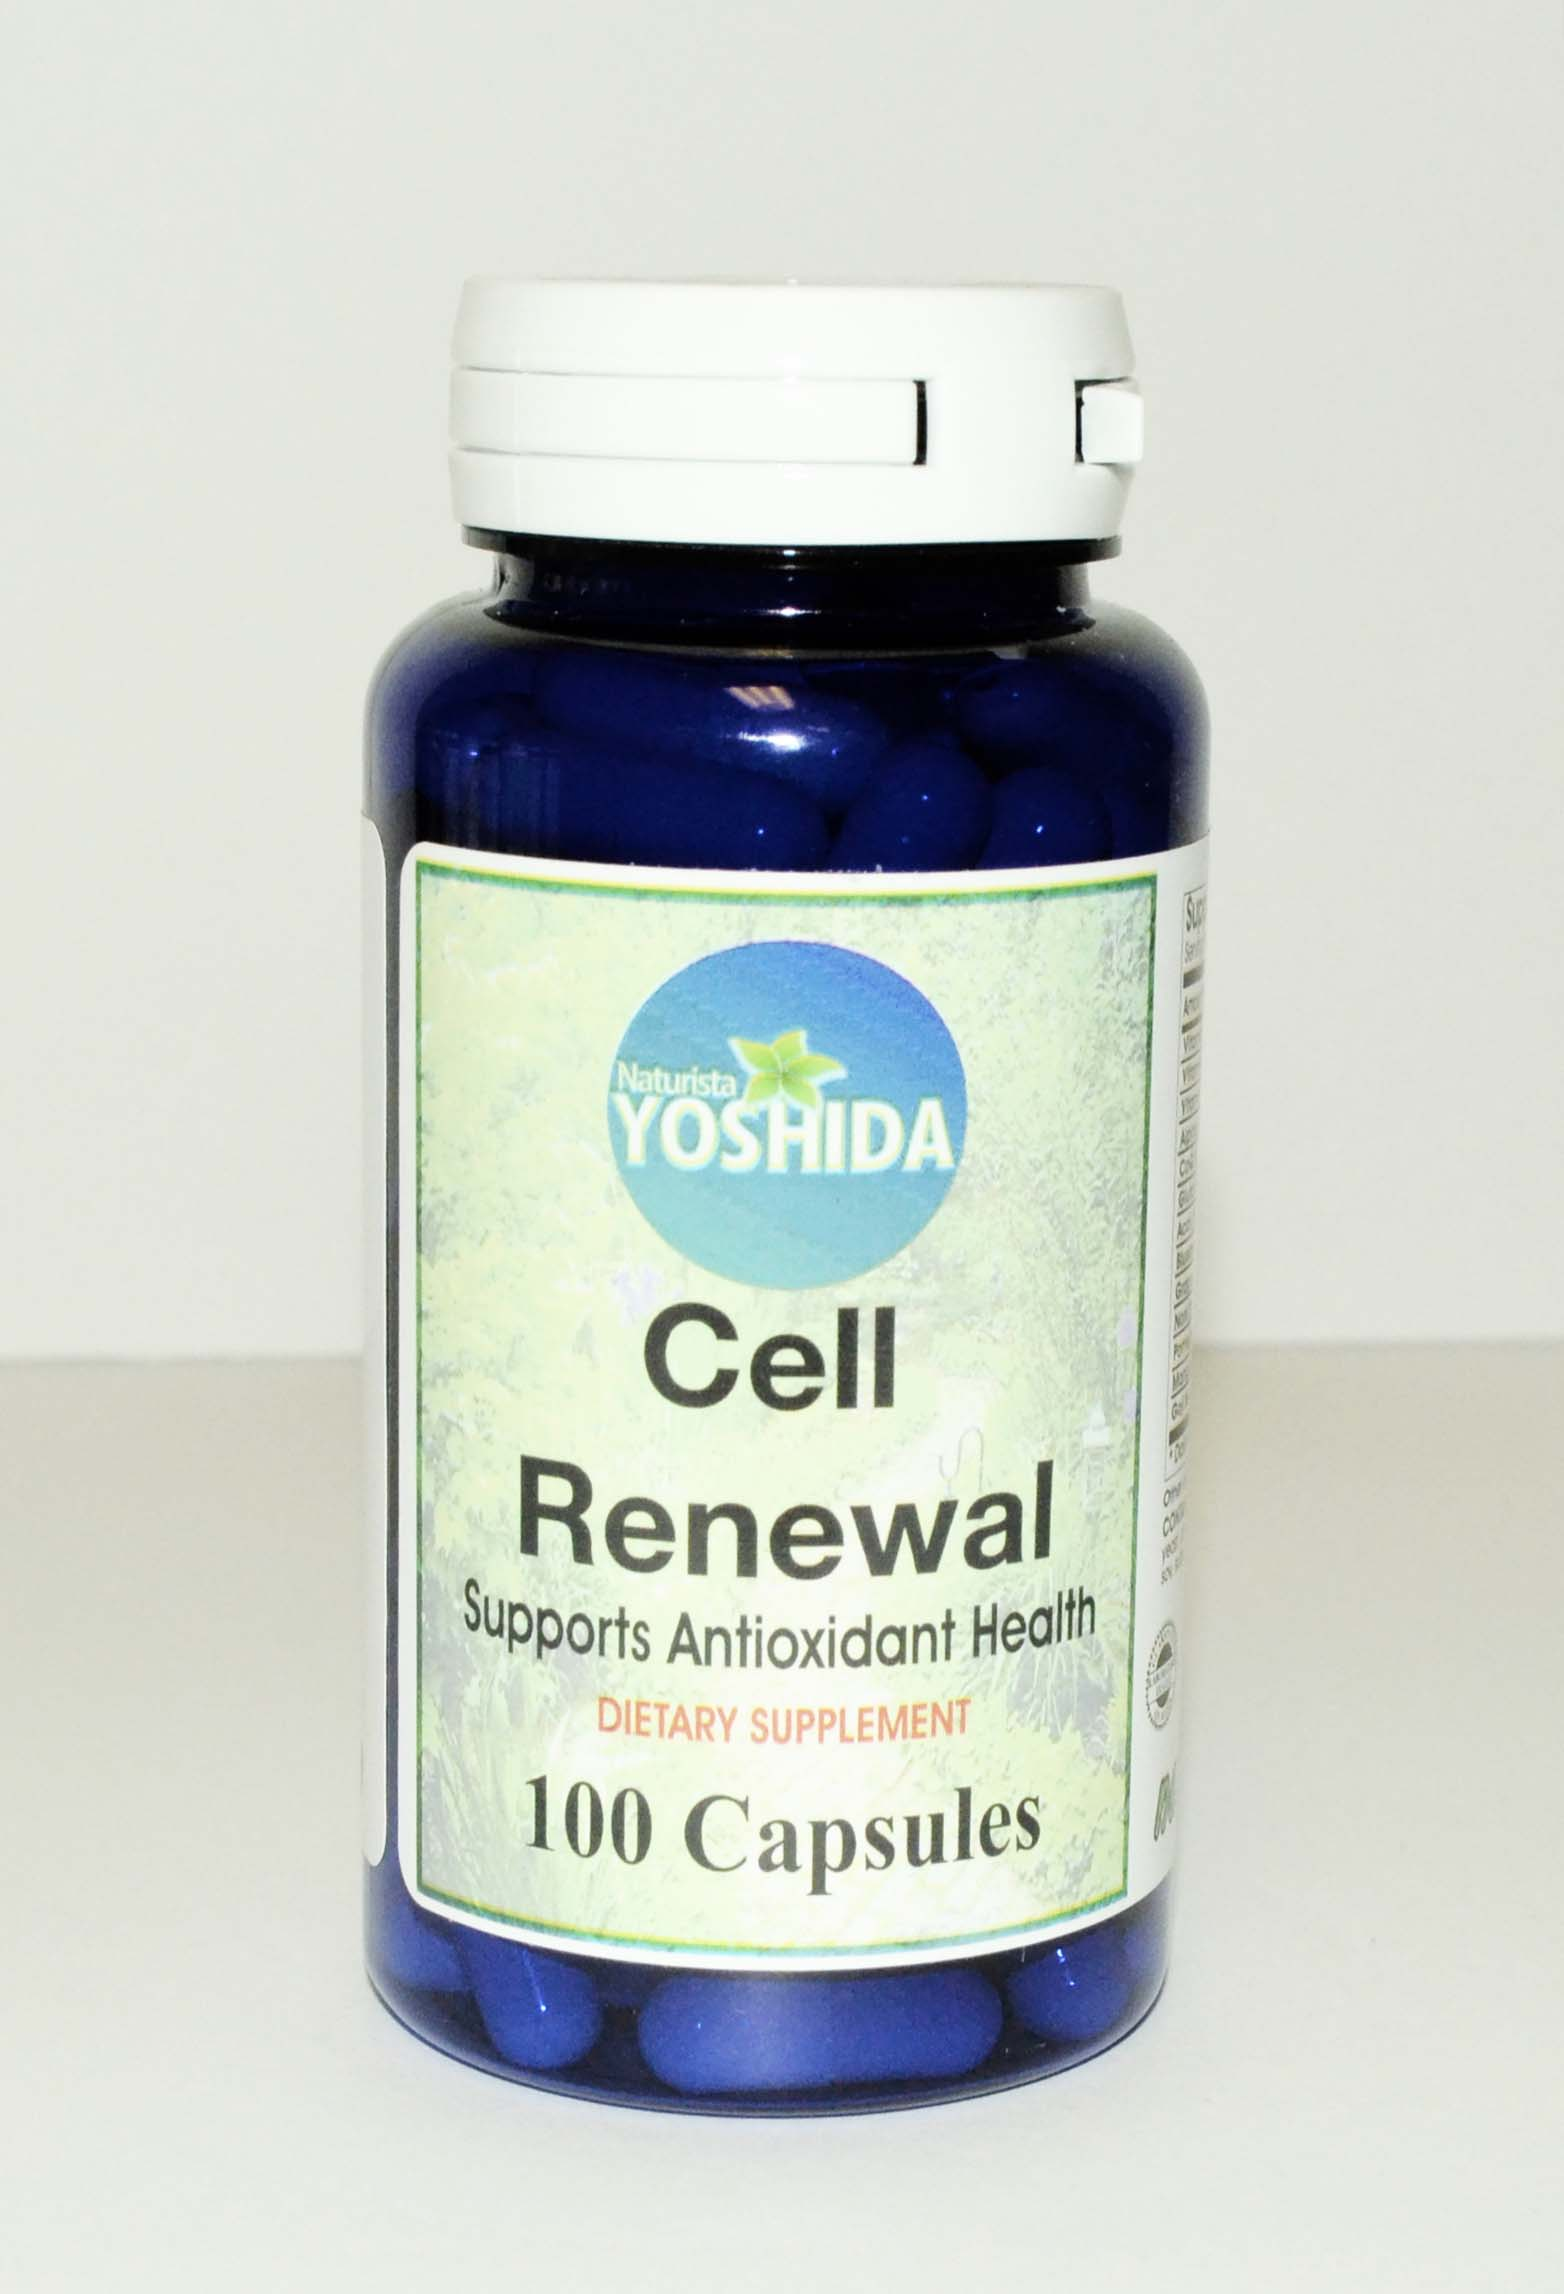 Cell Renewal